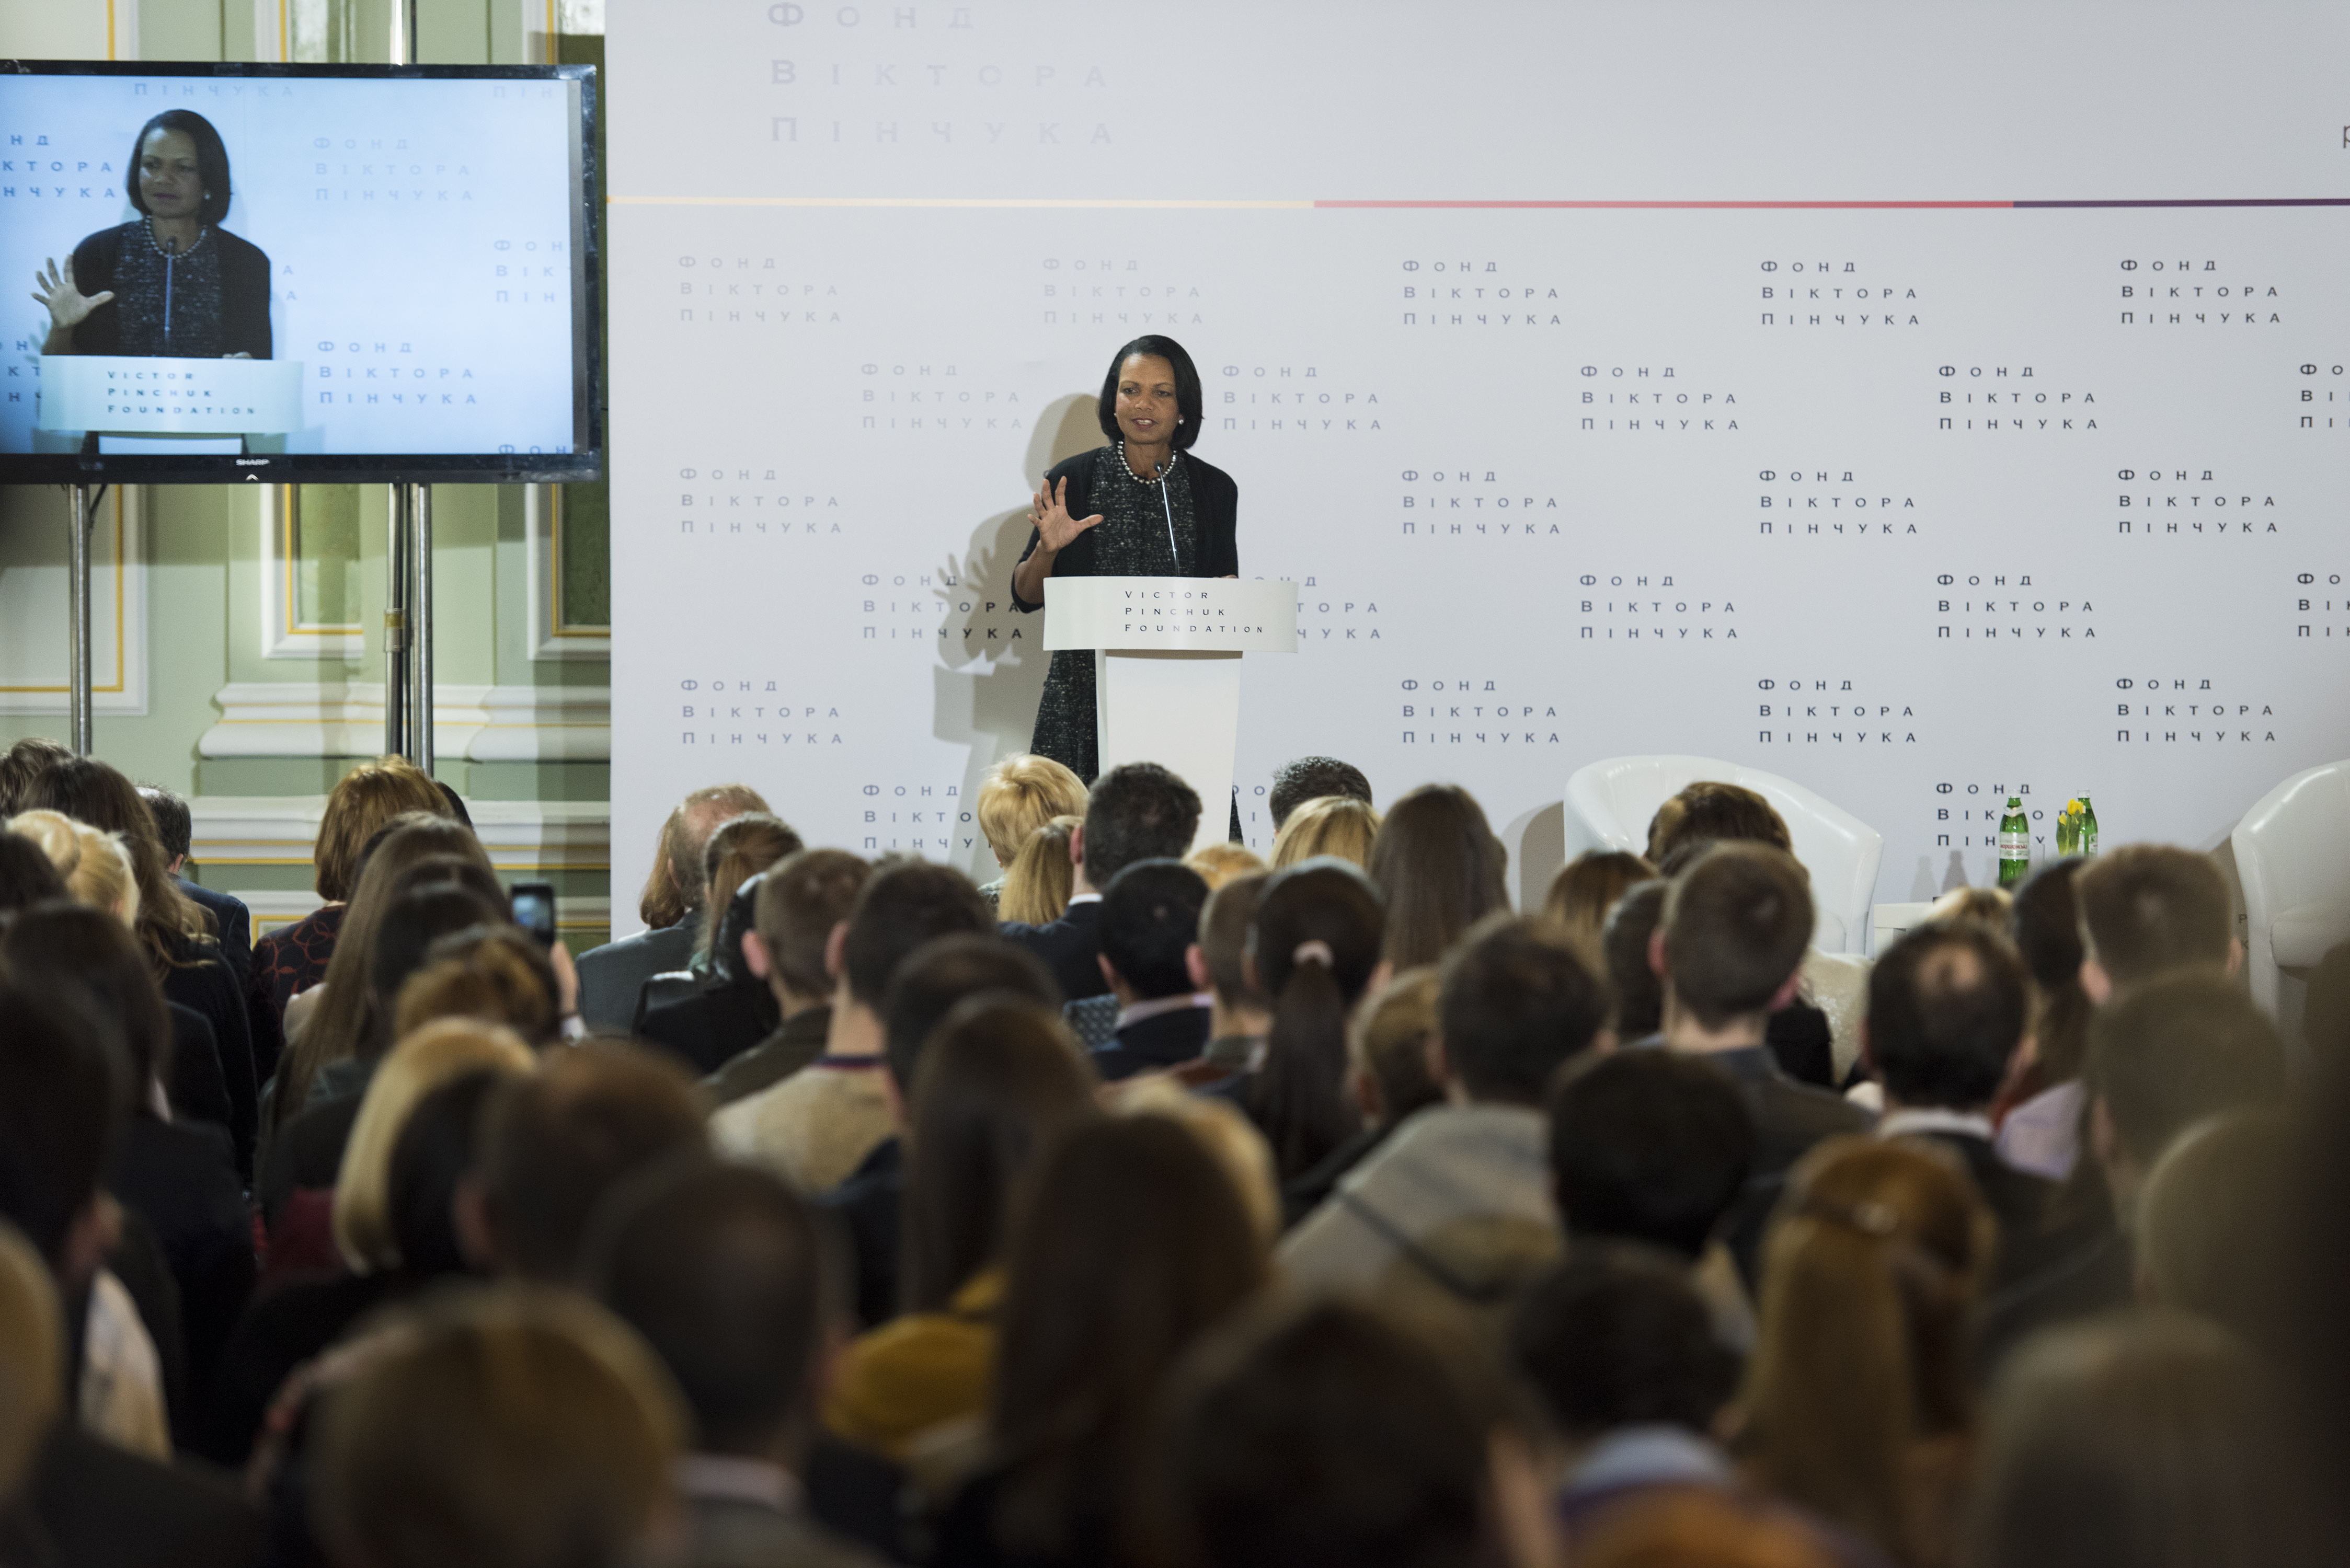 Public lecture by Condoleezza Rice